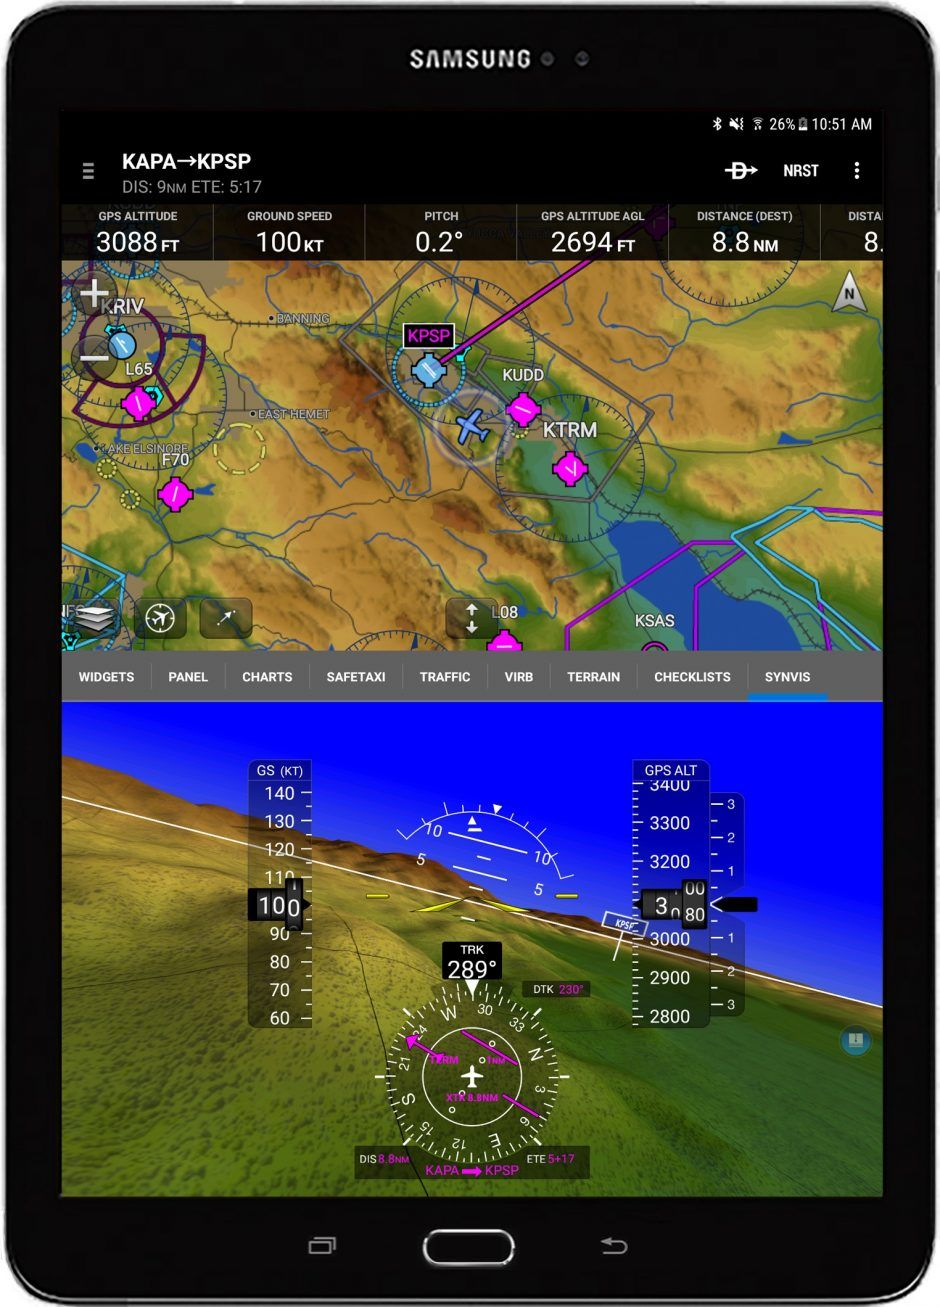 Garmin synthetic vision (SVX) and pilotconfigurable